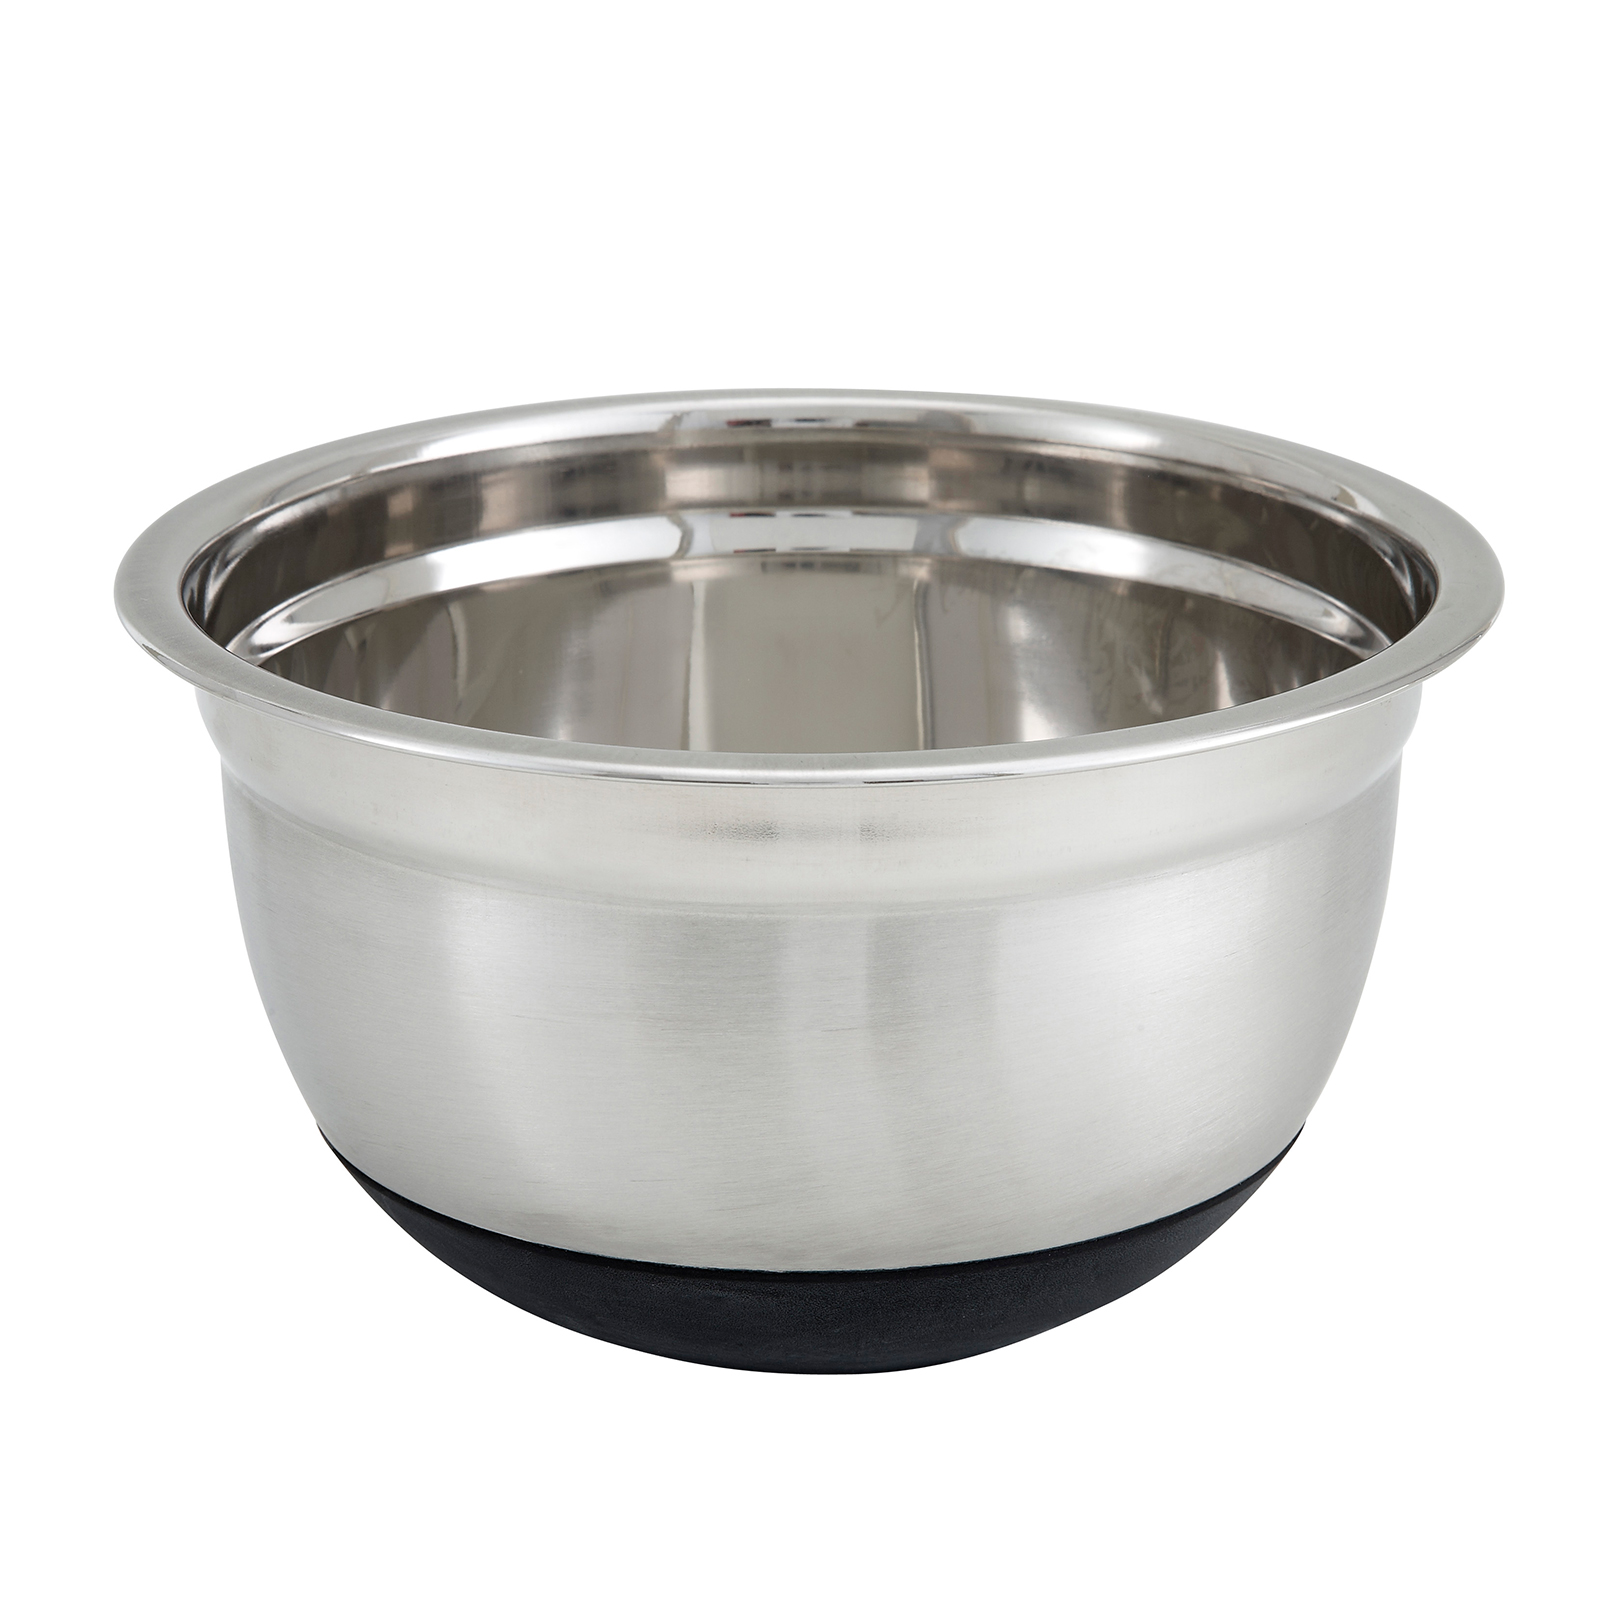 Winco MXRU-300 mixing bowl, metal